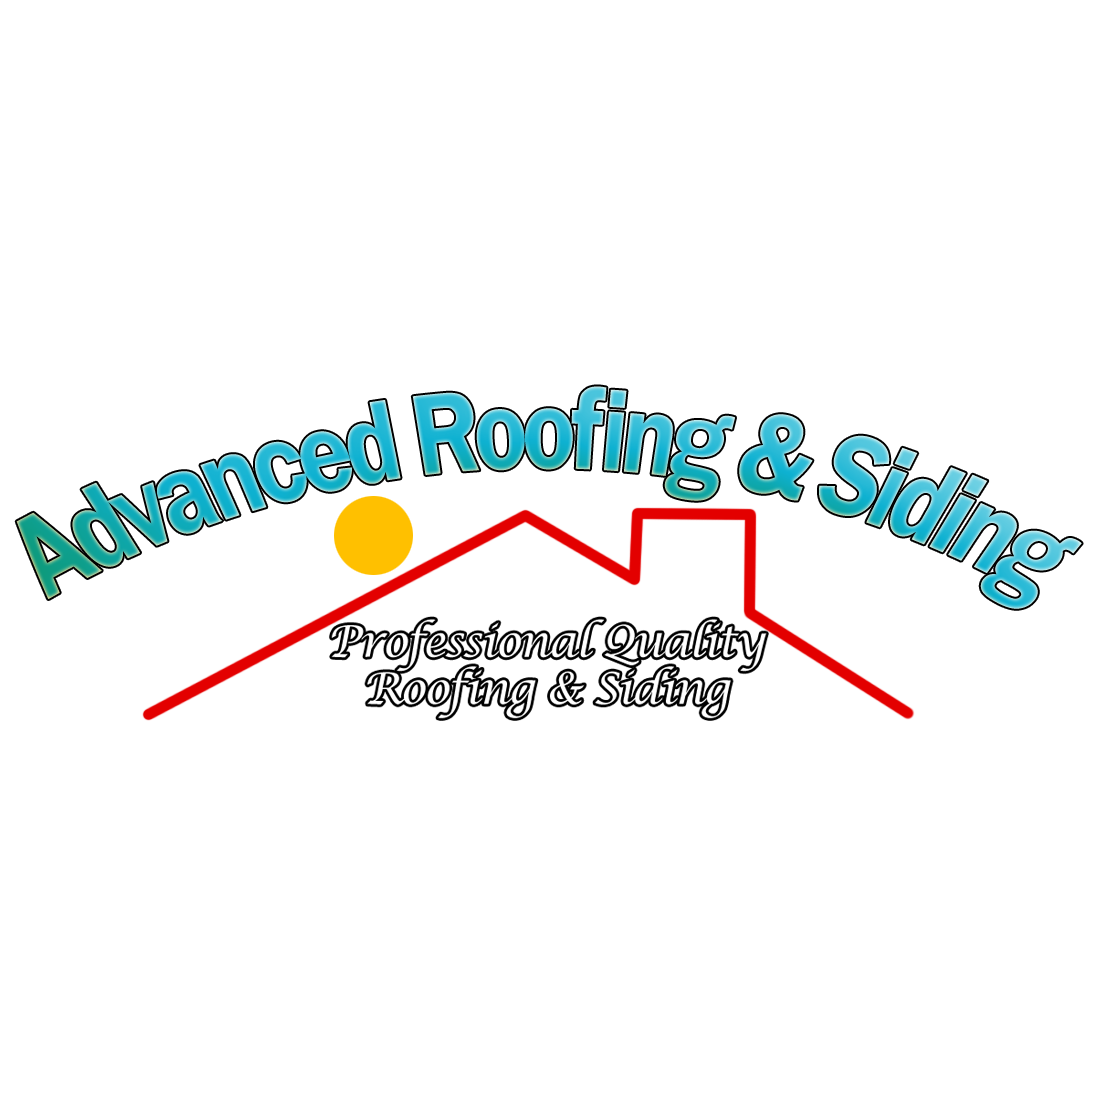 Advanced Roofing & Siding Contractors